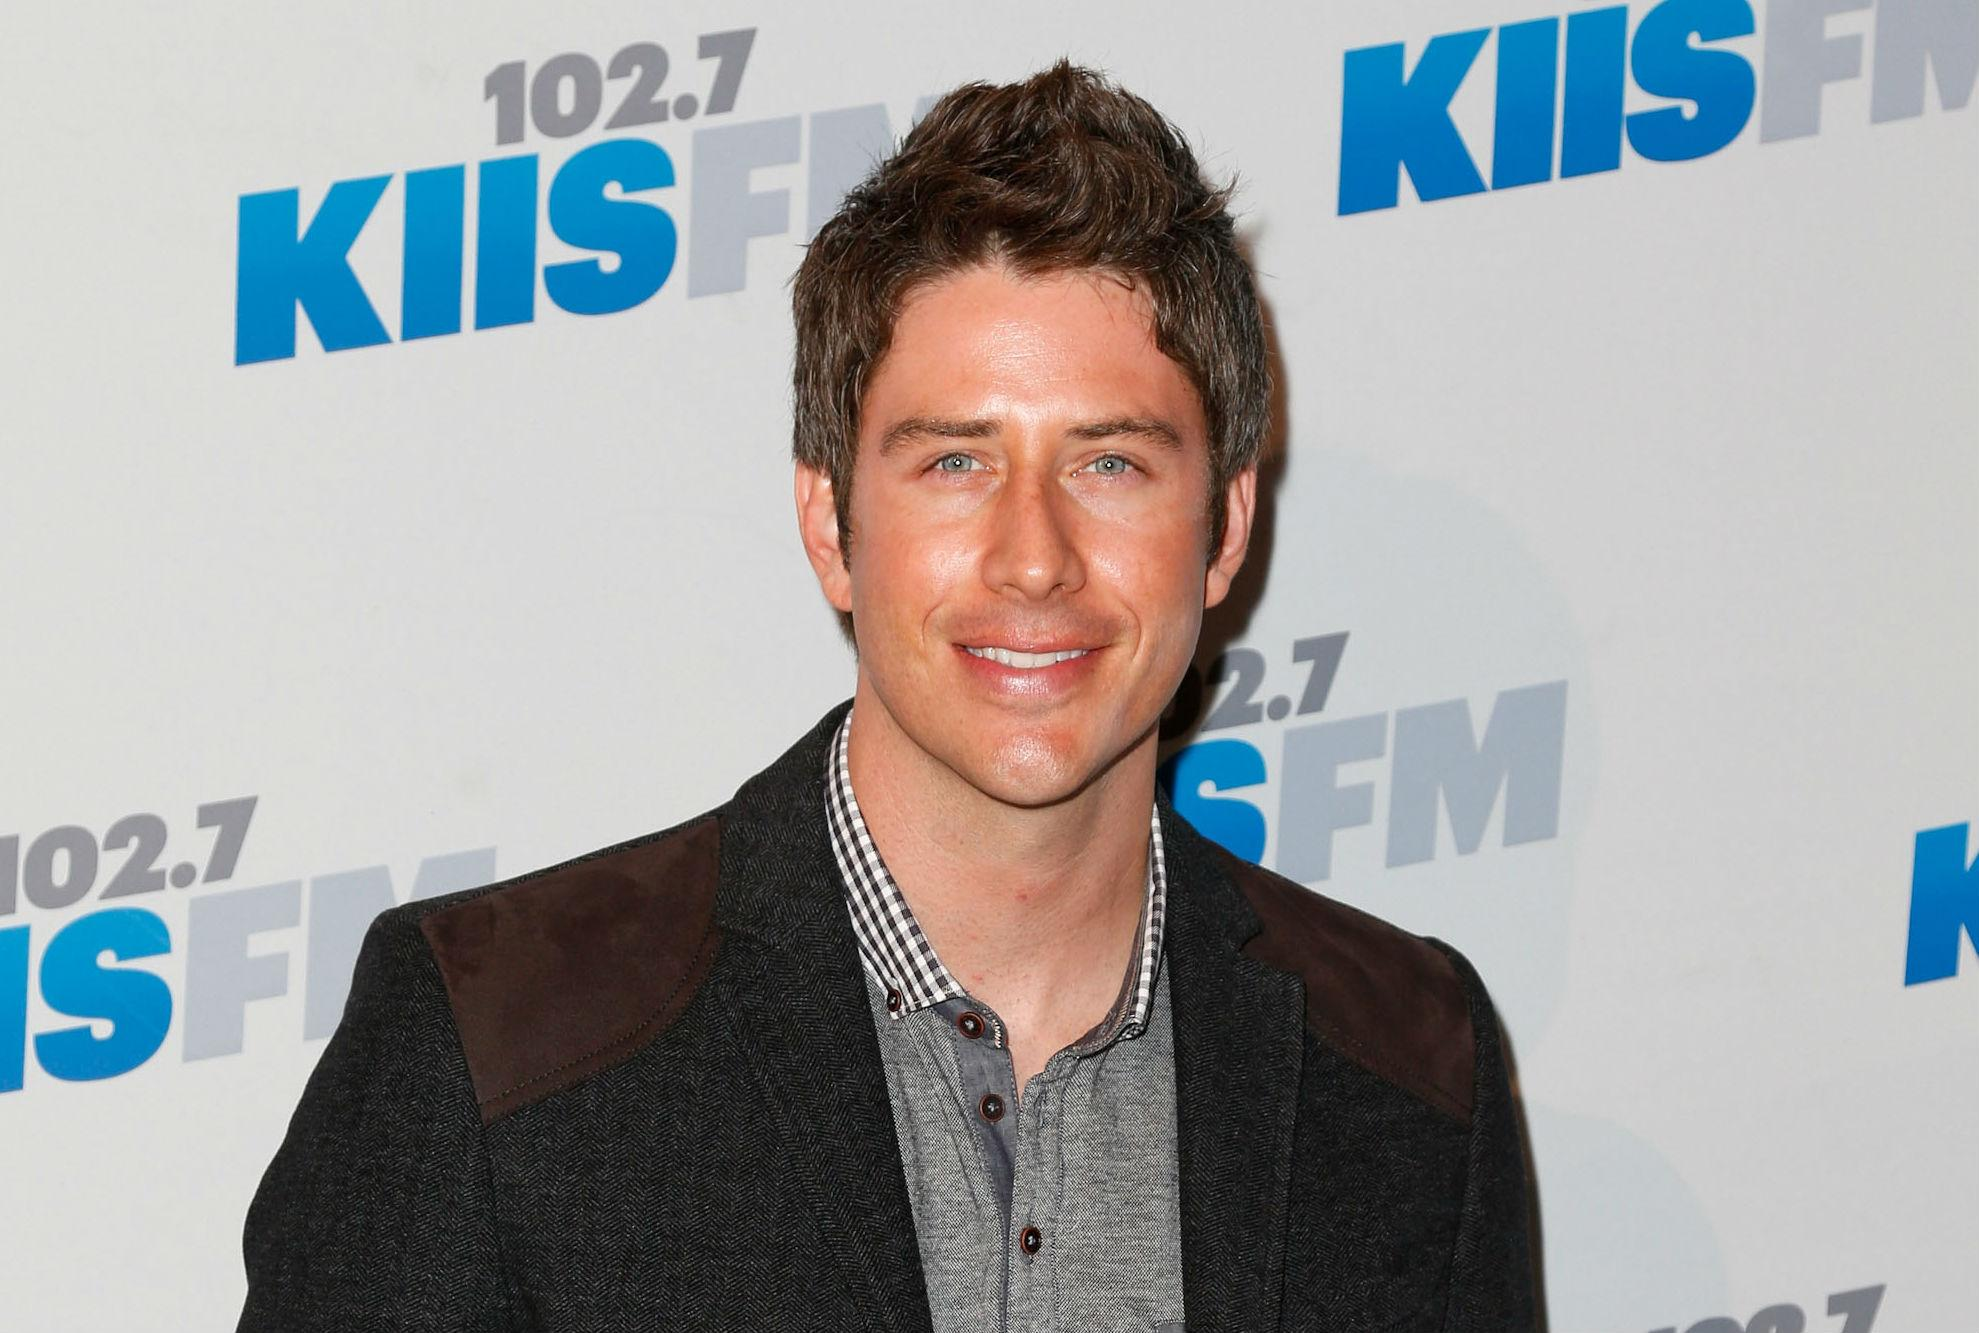 'Bachelor' franchise names Arie Luyendyk Jr. as next leading man